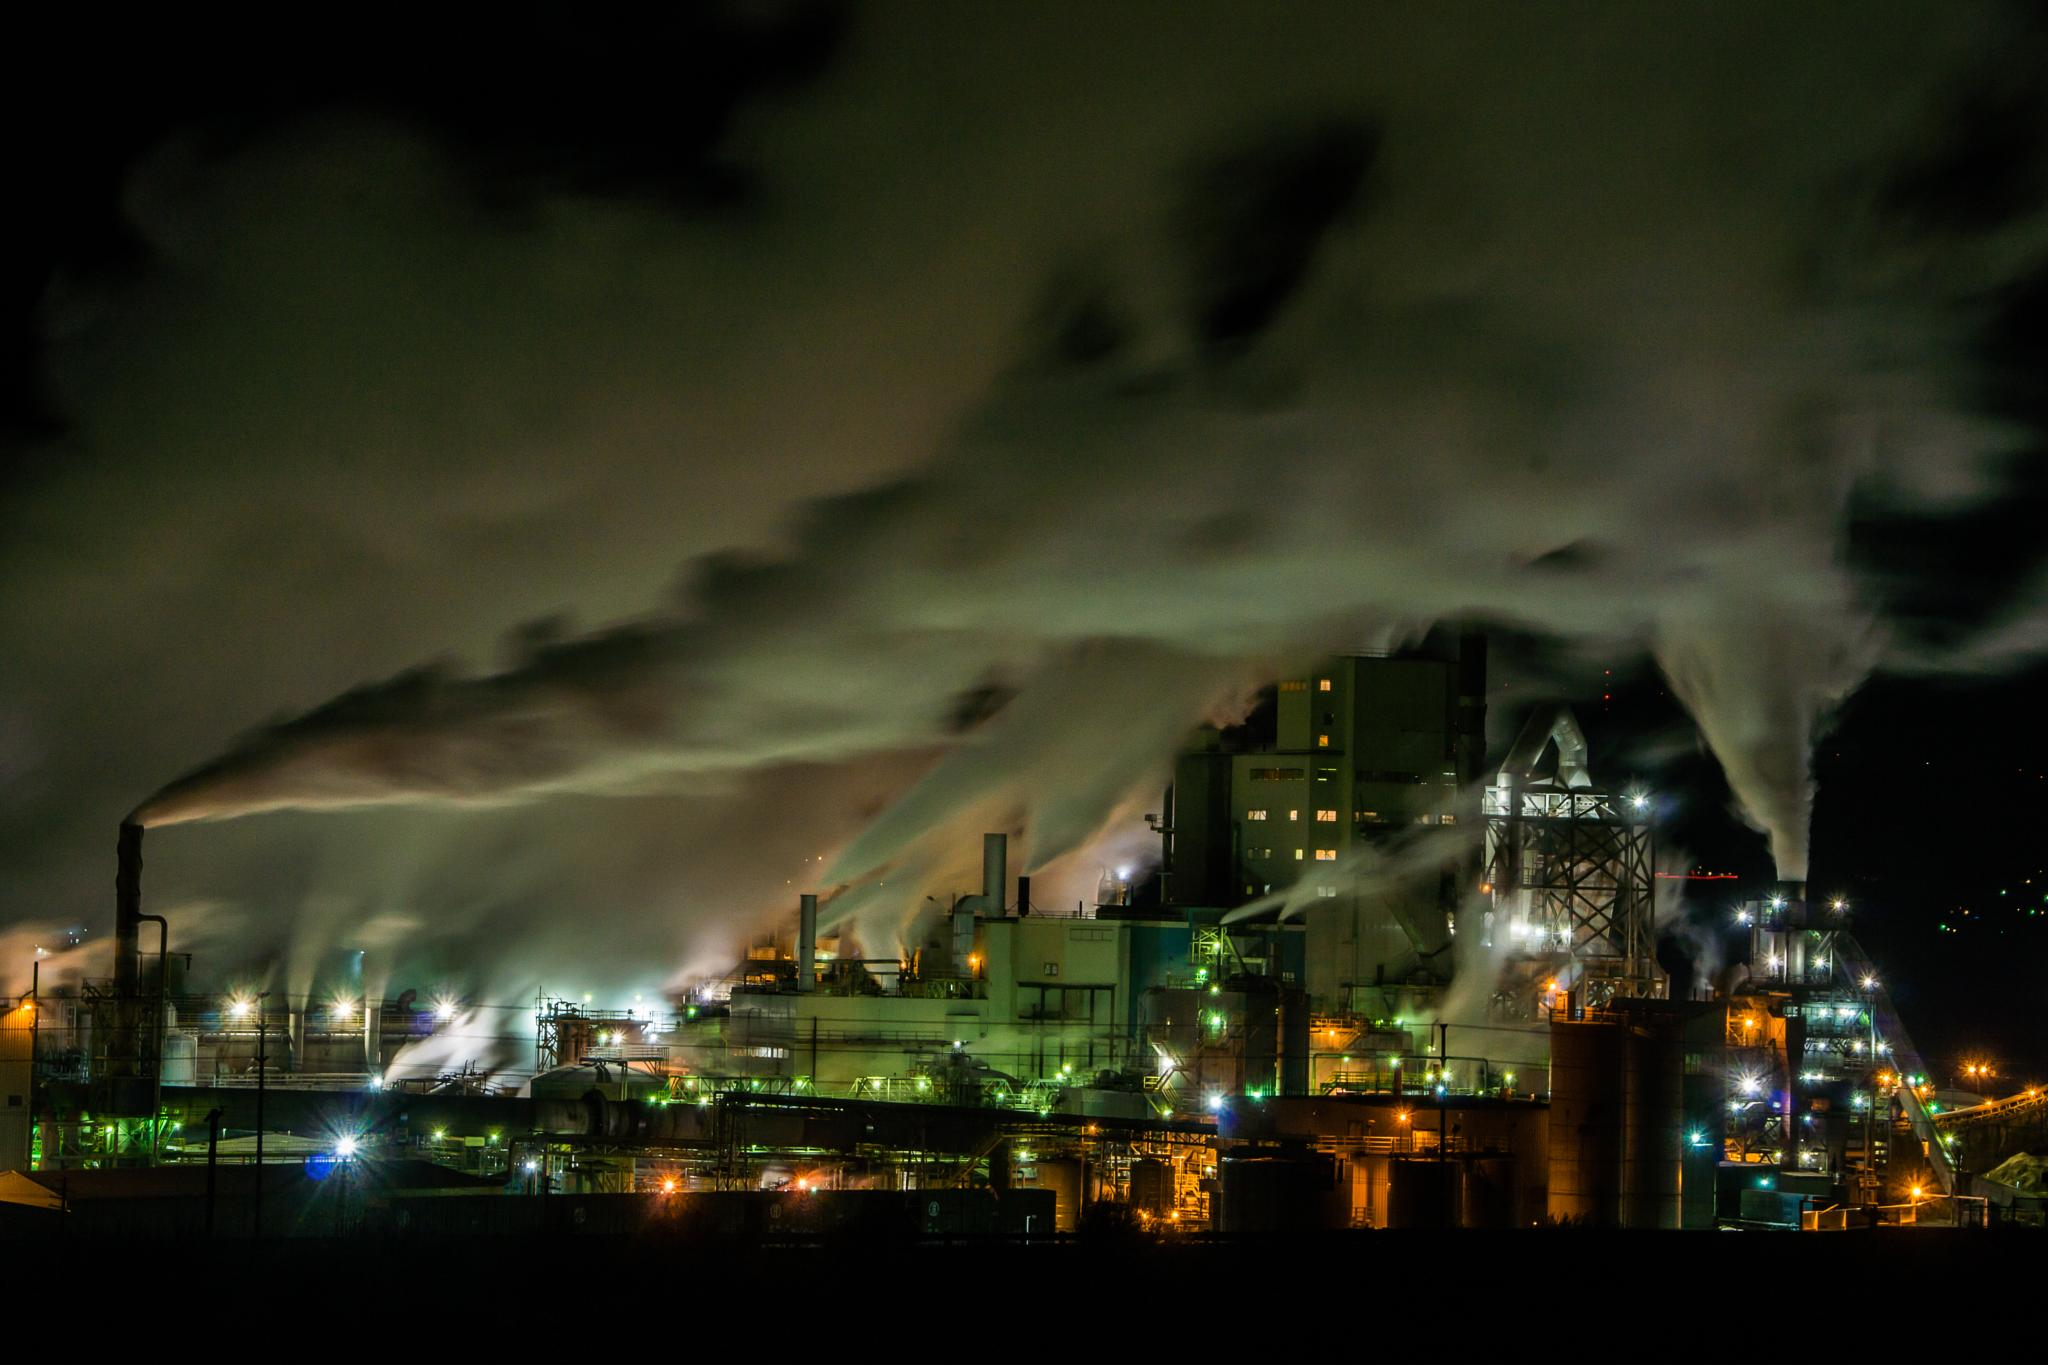 Papermill at Night by Ranbud